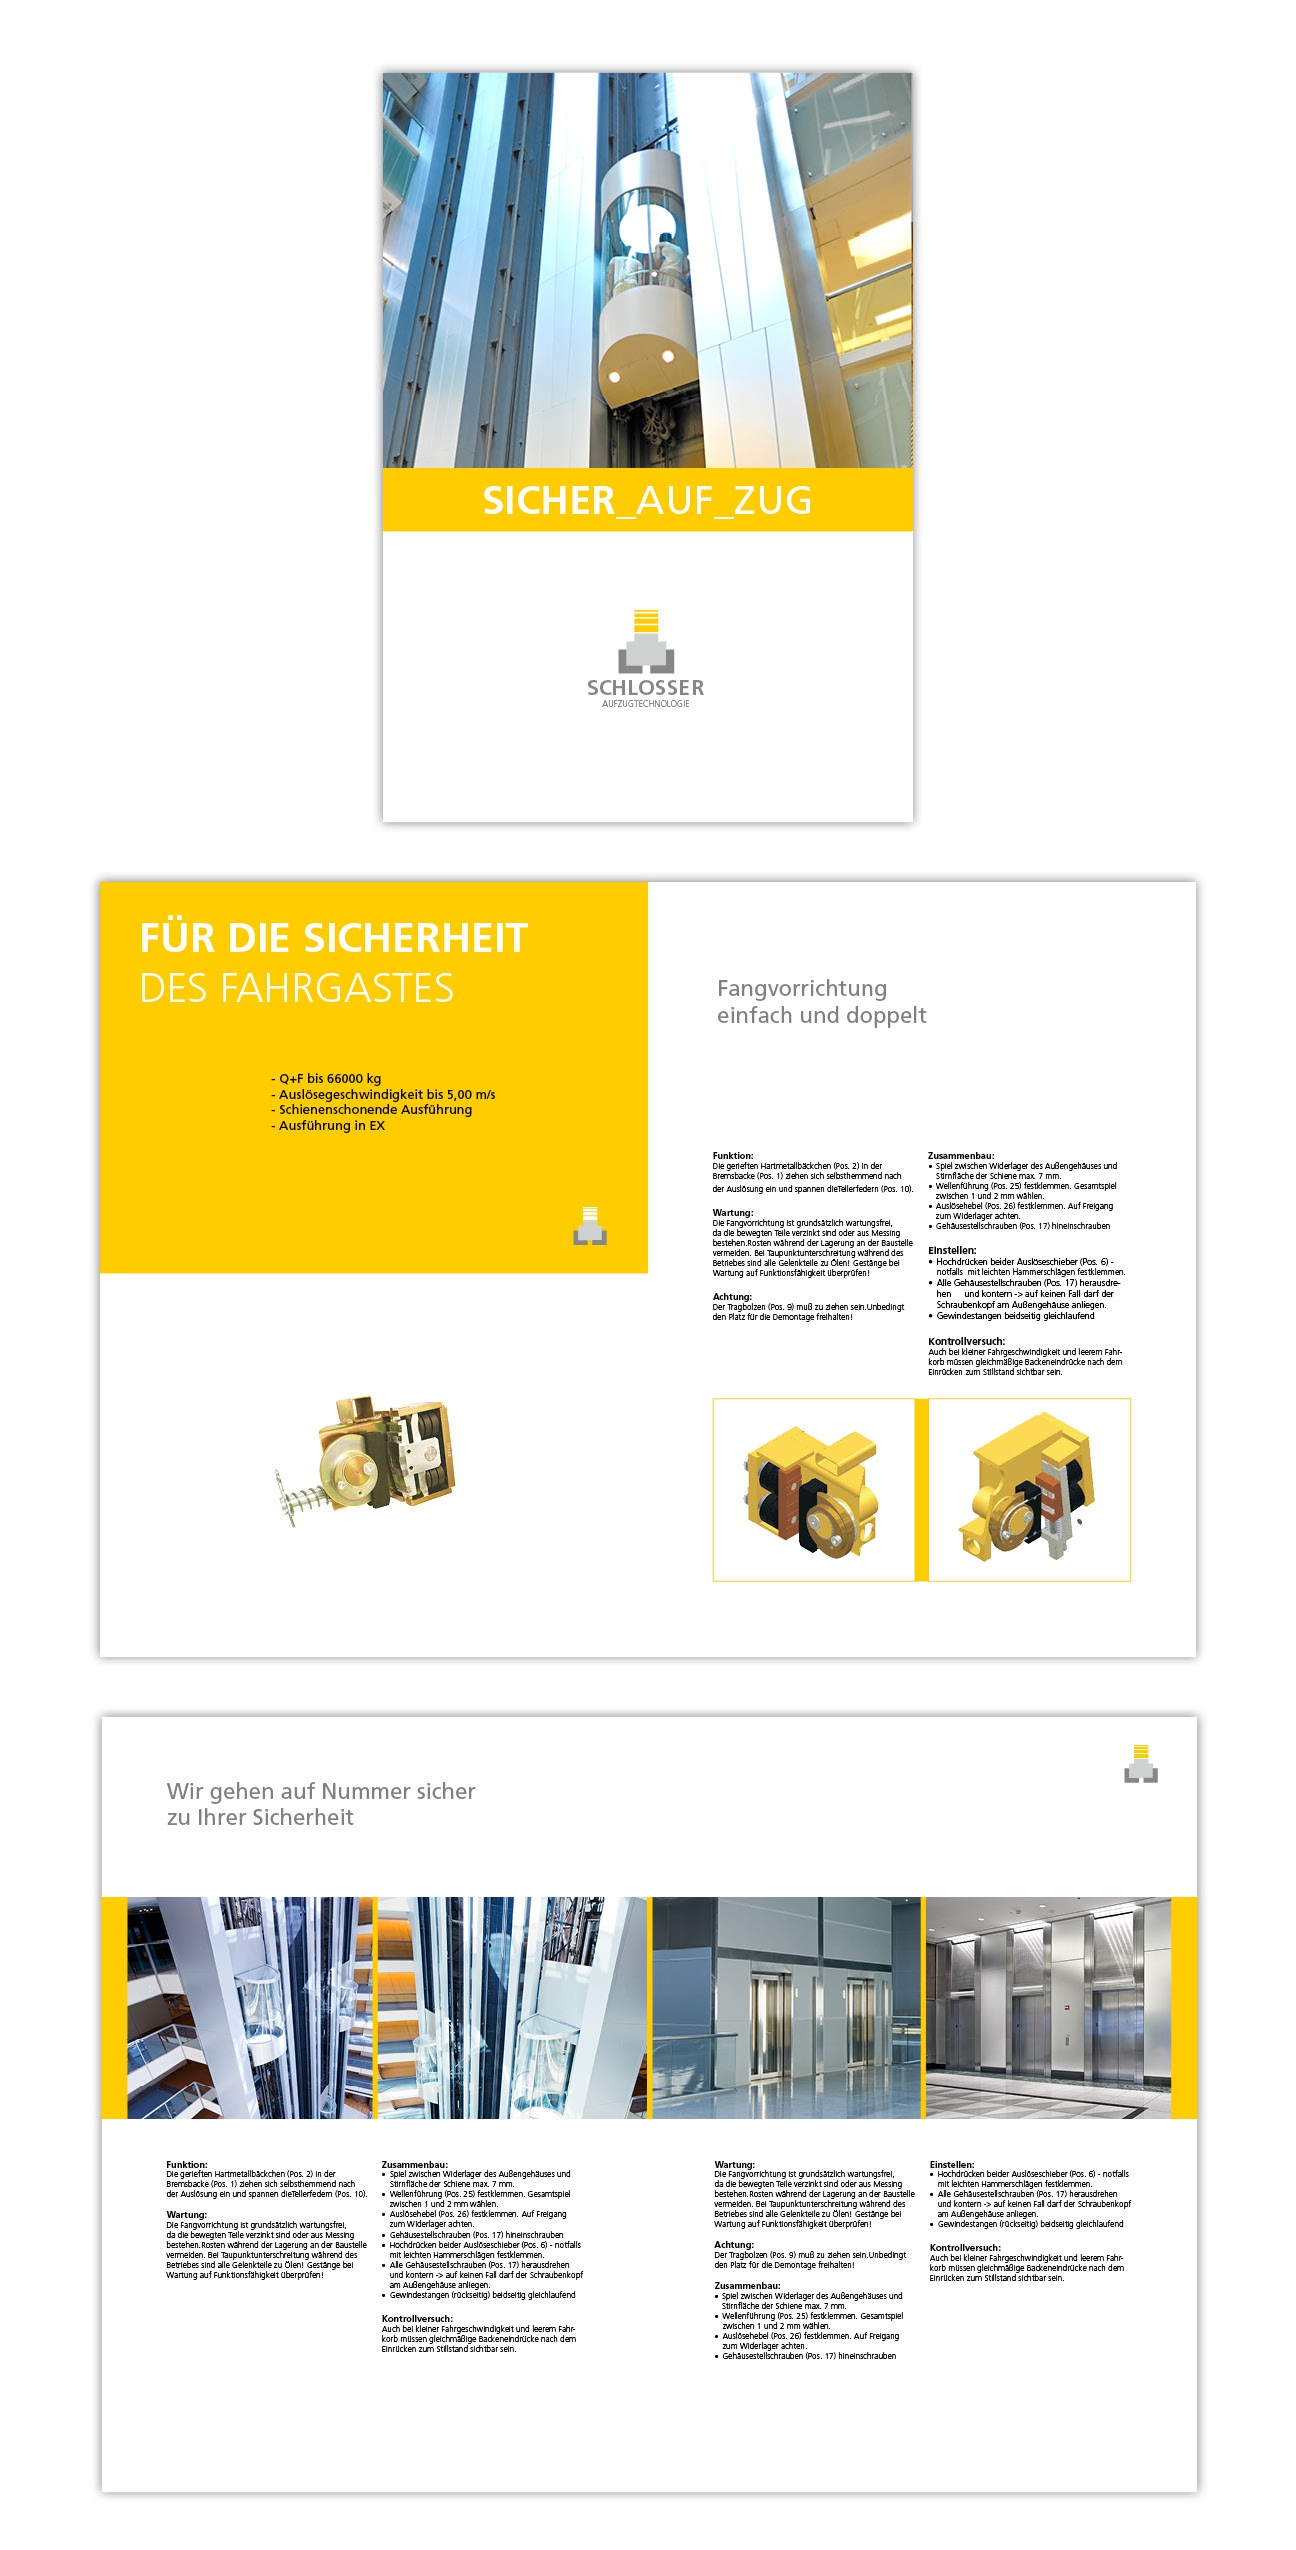 Schlosser Corporate Design Image Prospekt